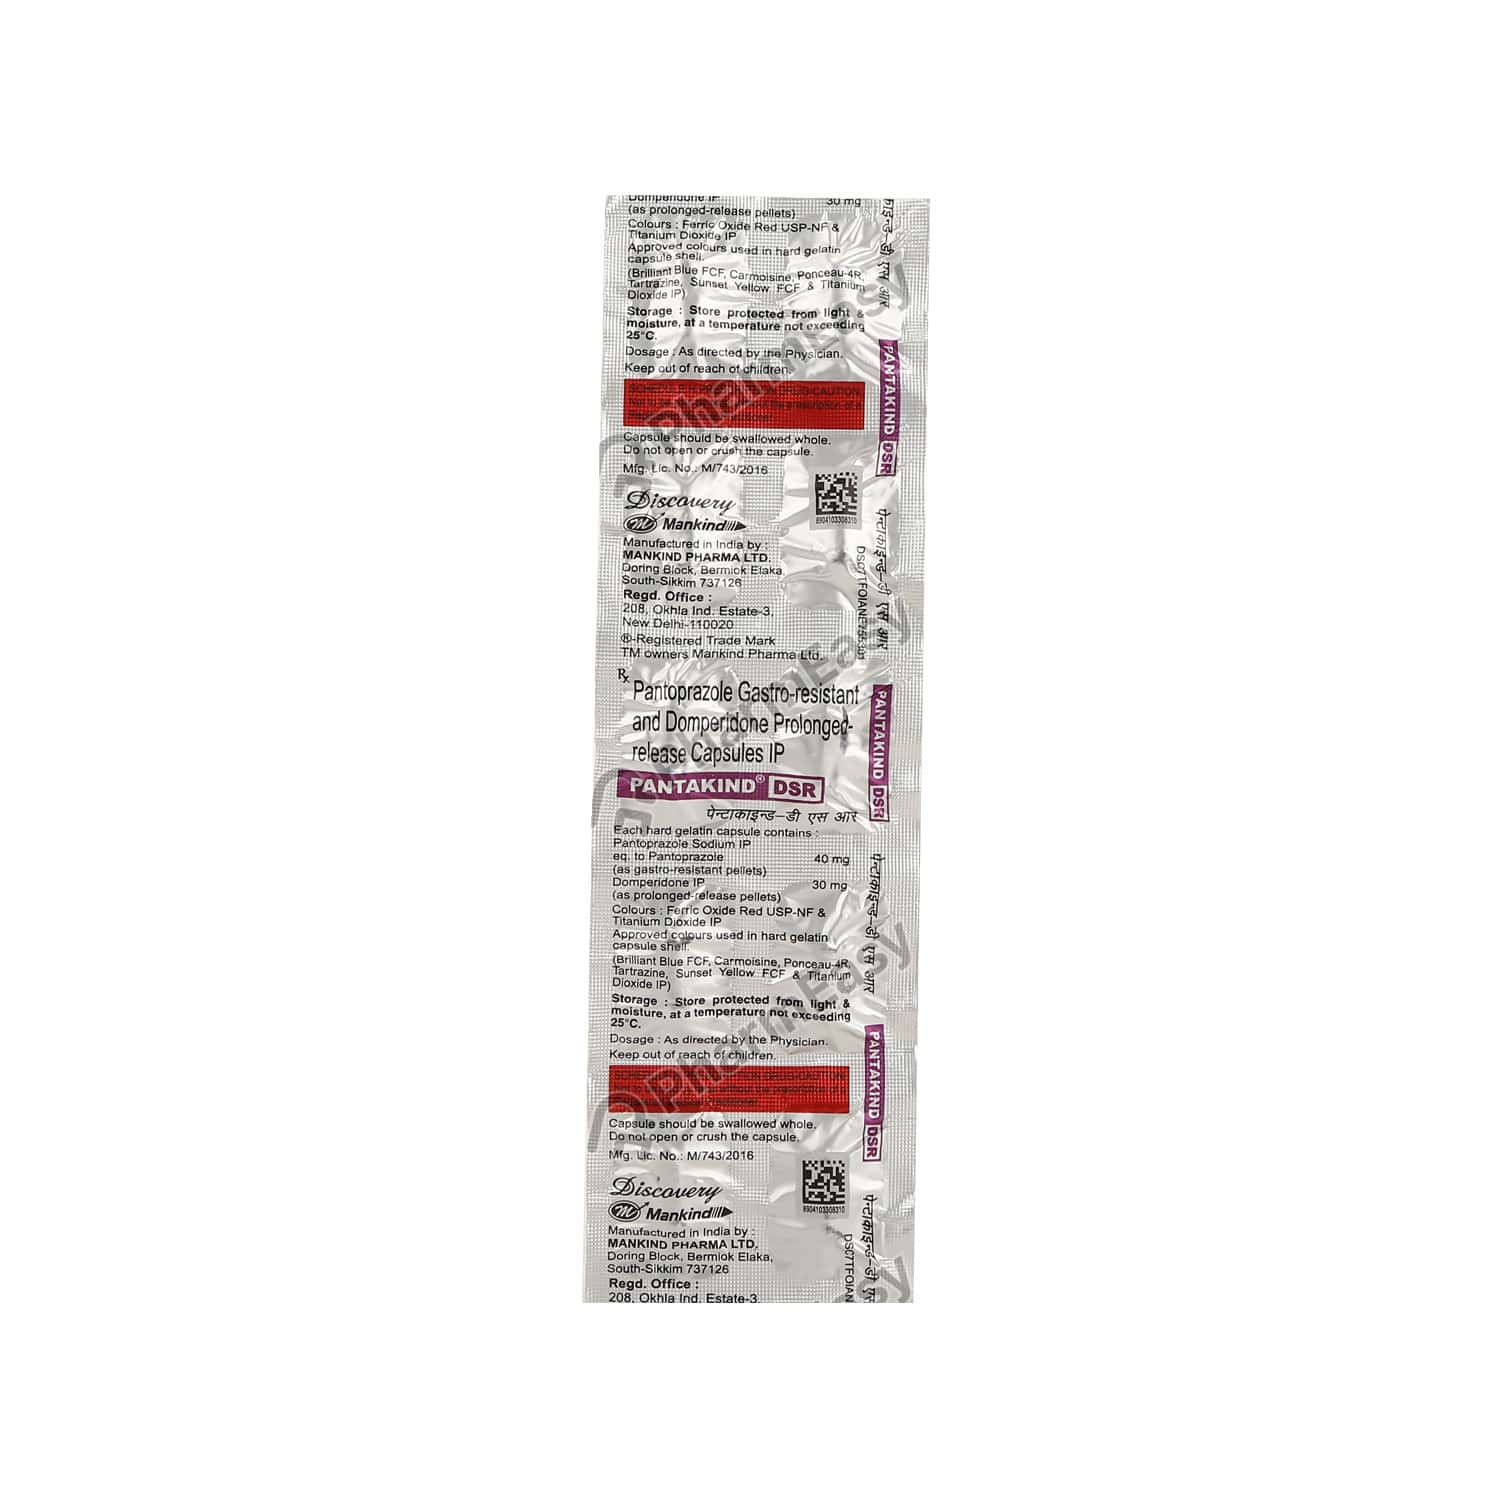 Pantakind Dsr 40mg Strip Of 10 Capsules